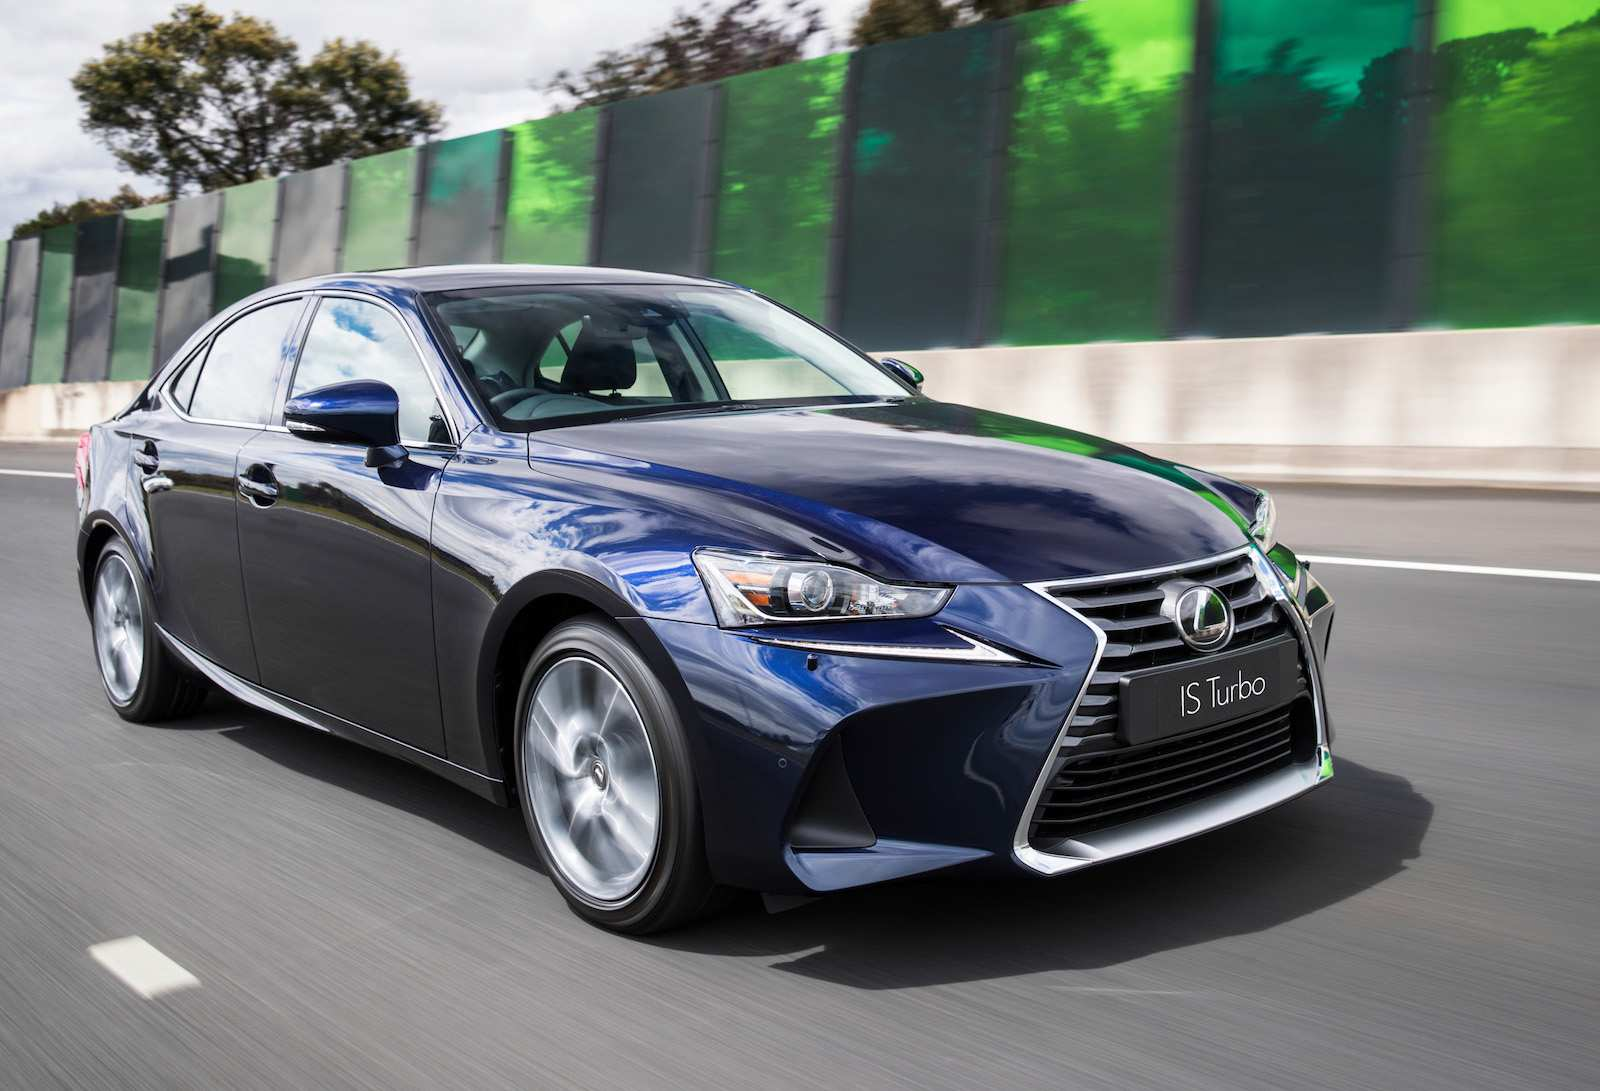 84 The Lexus Is 200T 2020 Exterior And Interior